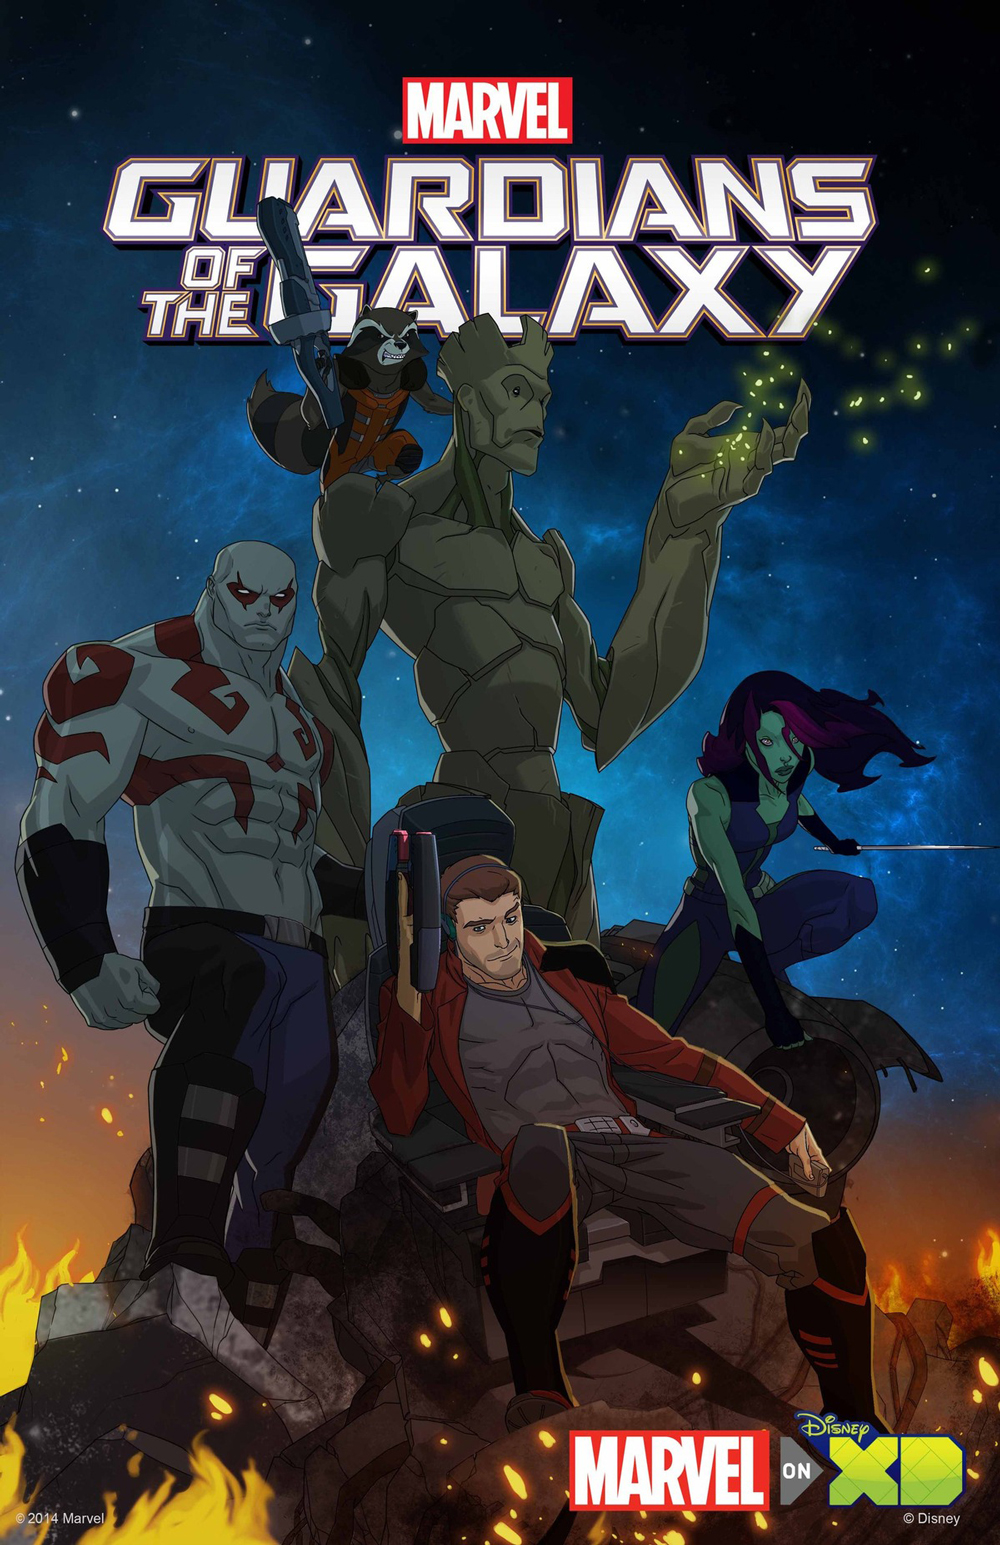 guardians-of_the_galaxy-cartoon_poster_BBBuzz